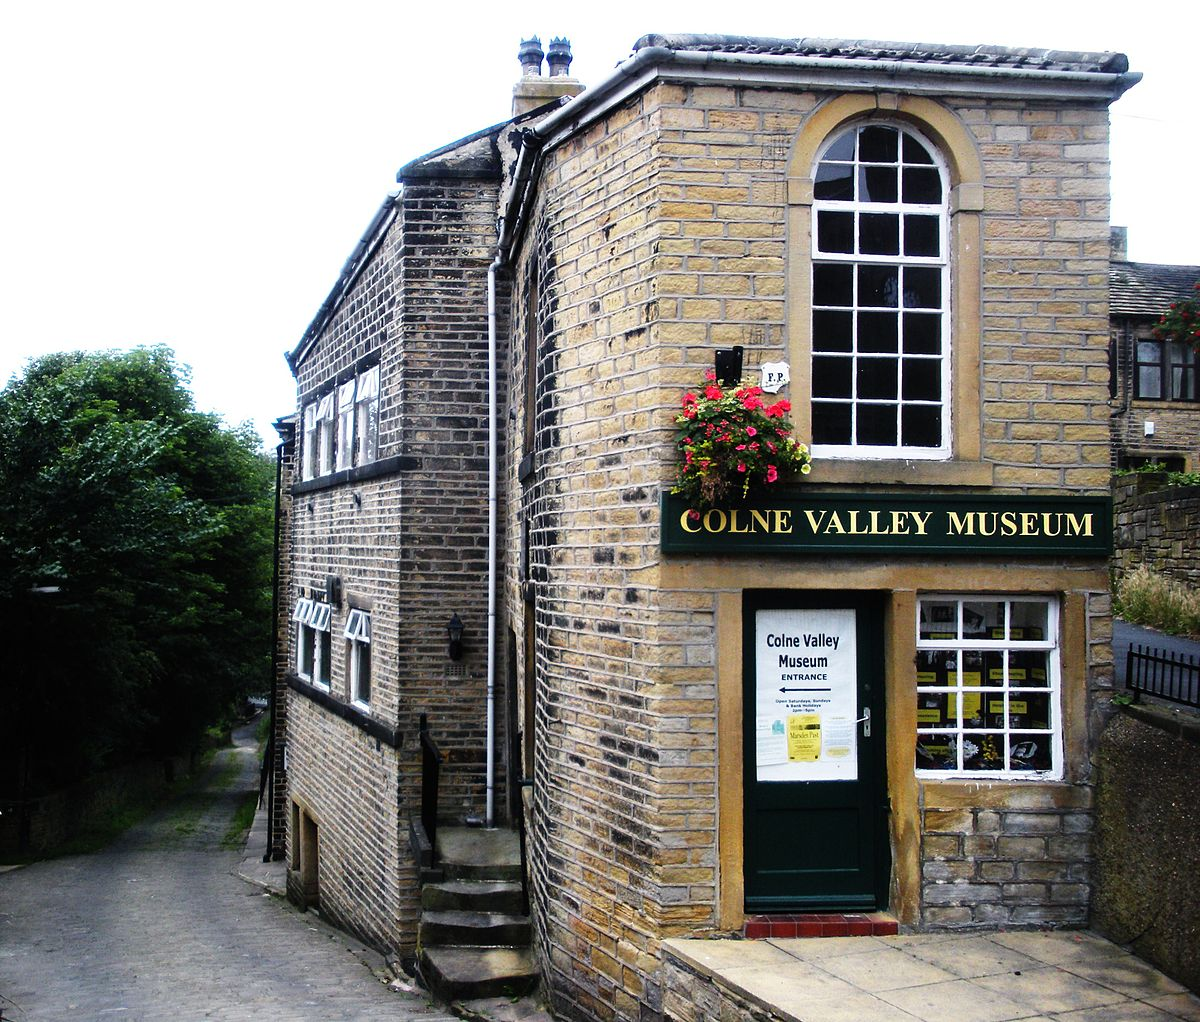 Colne Valley Museum Wikipedia